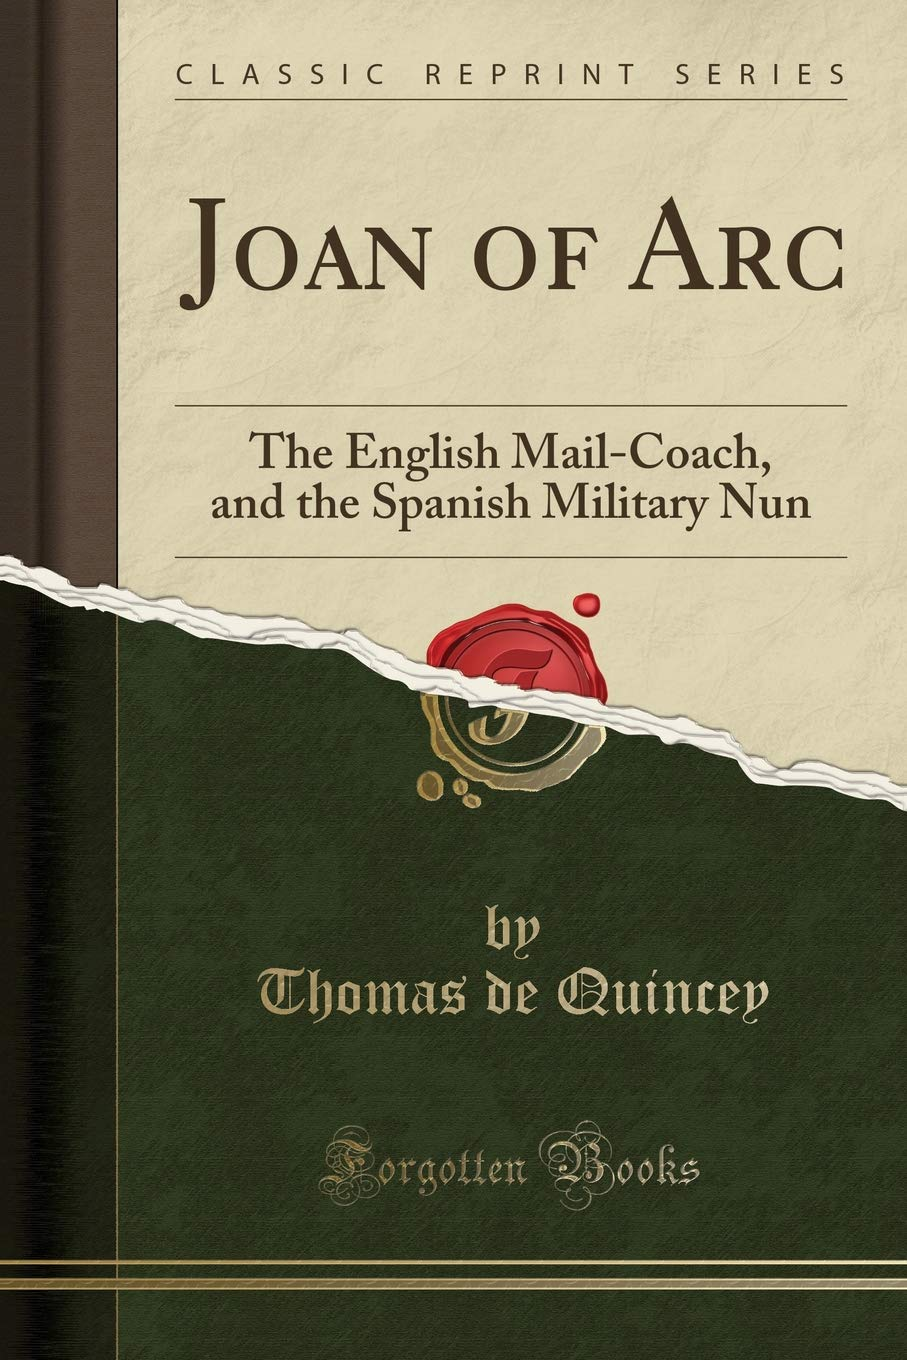 The English Mail-Coach and Joan of Arc